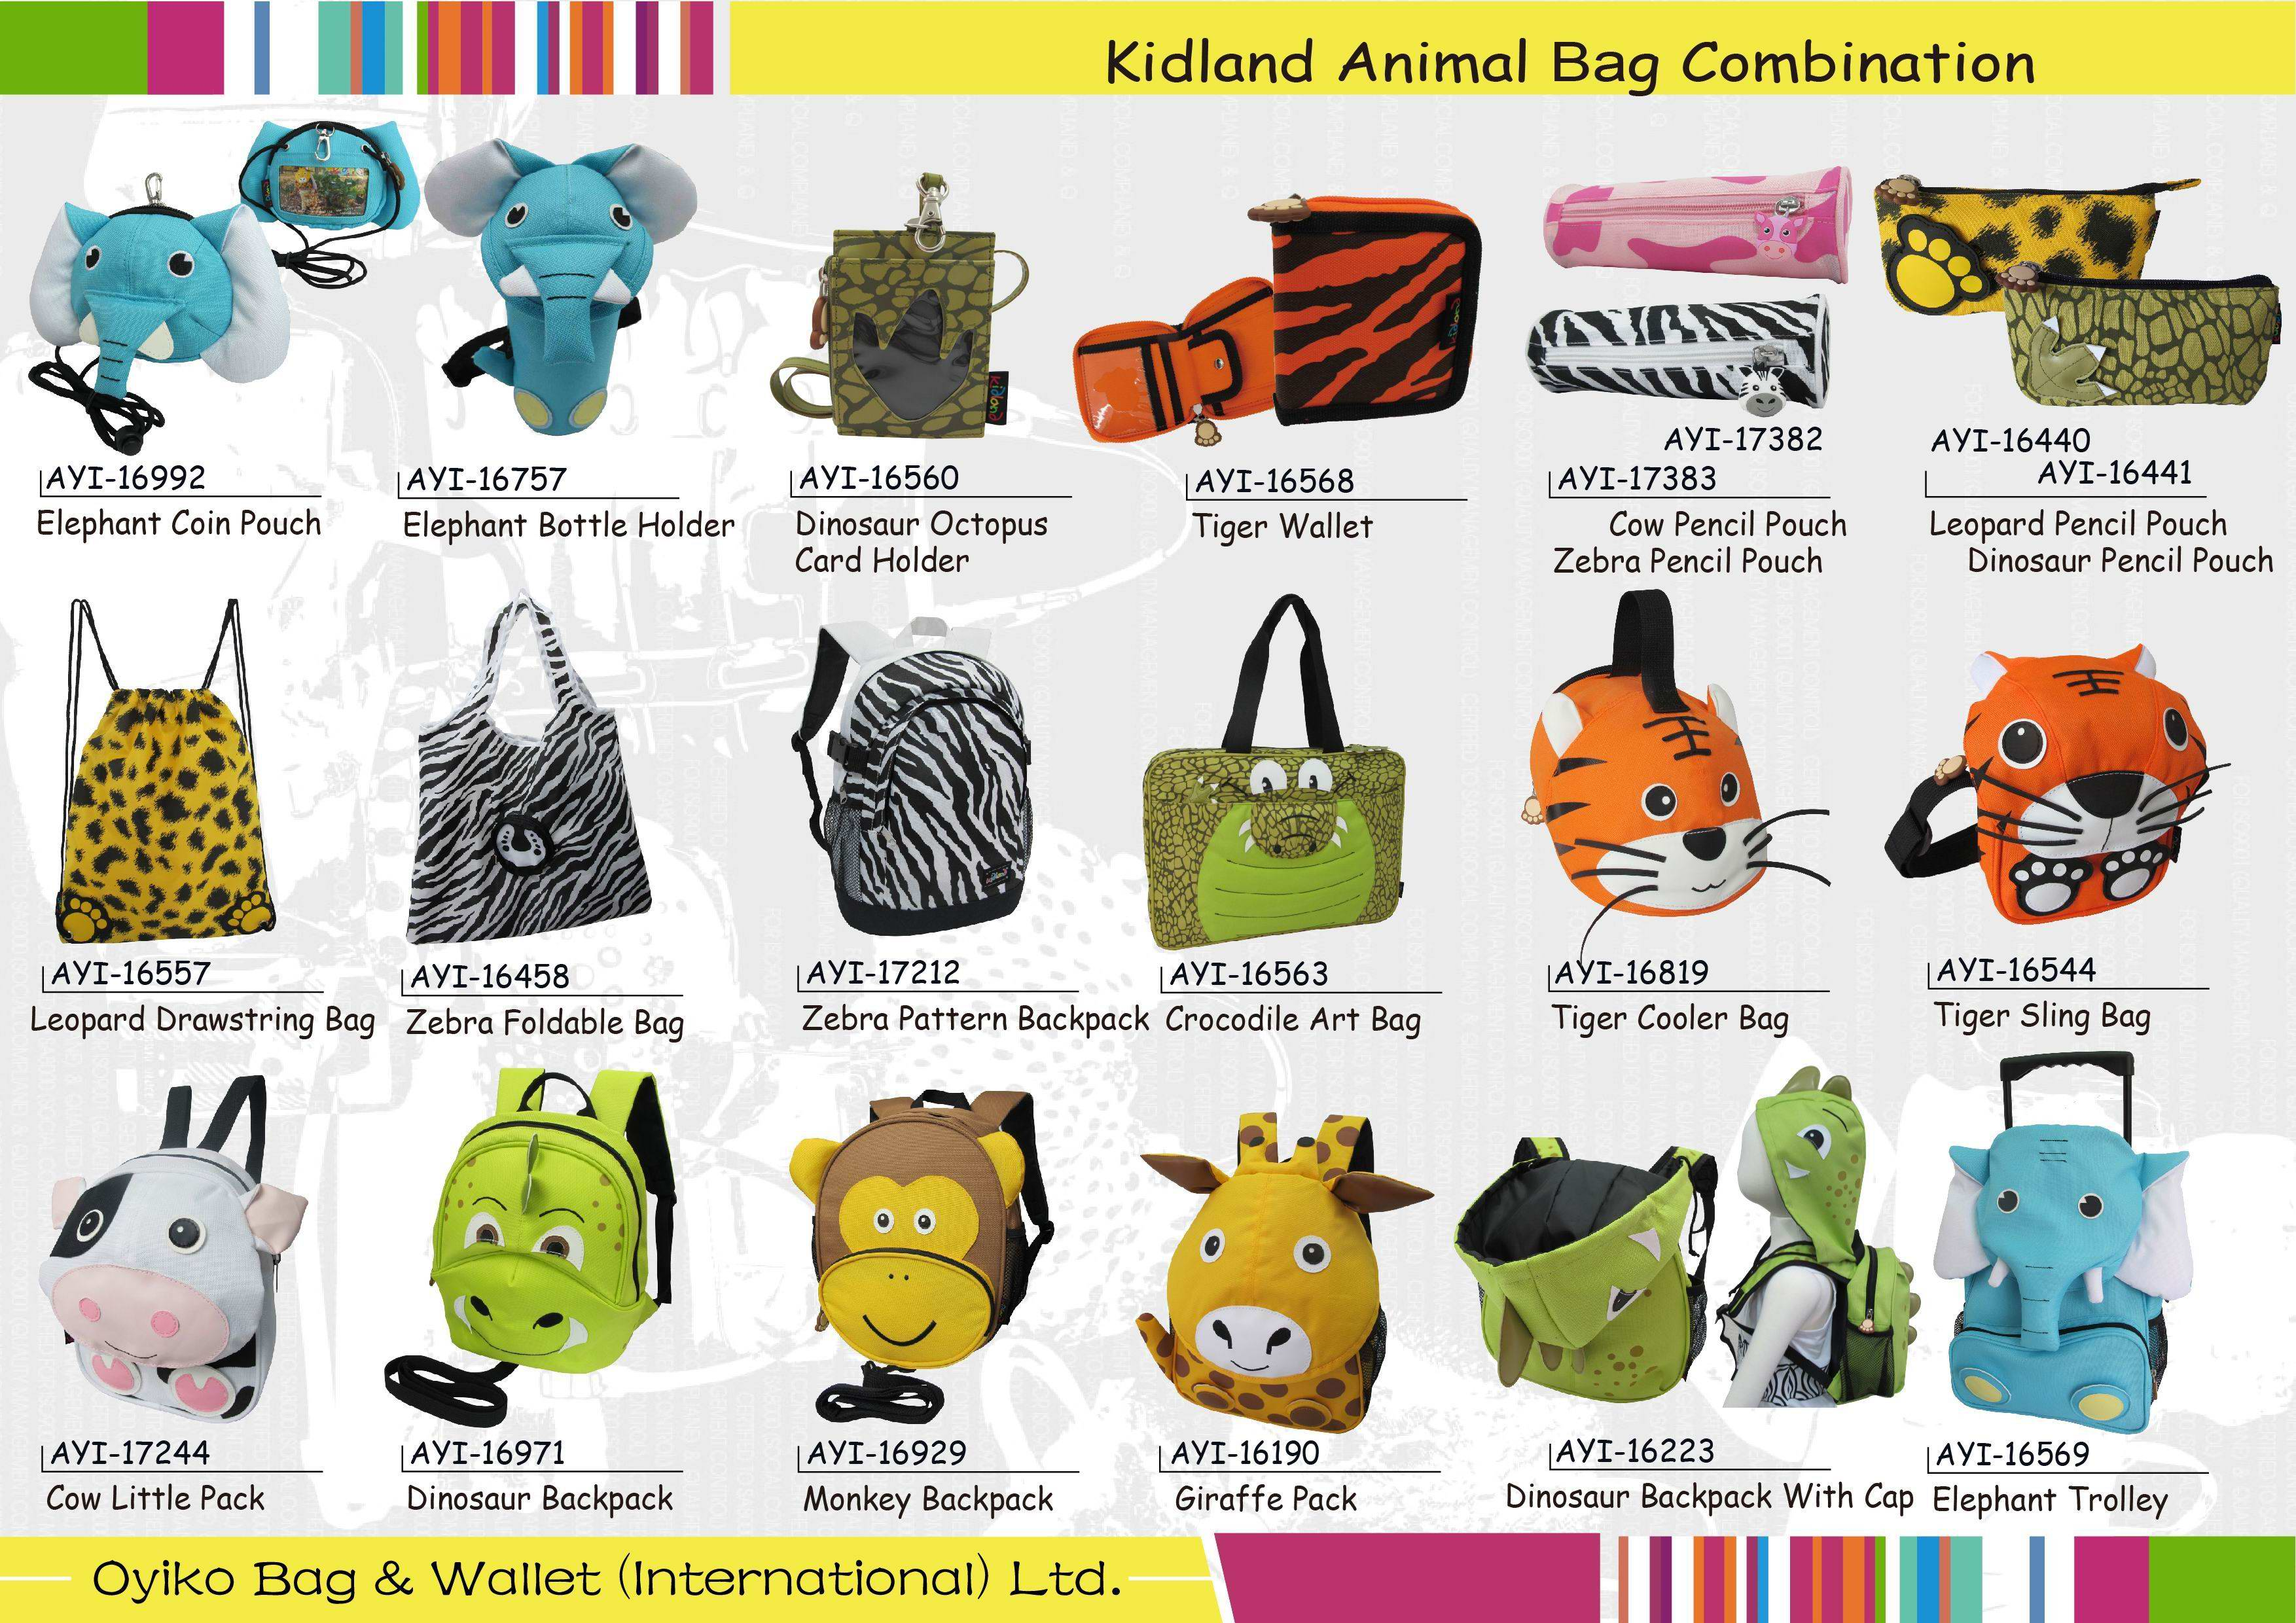 Kidland Animal Bag Combination.jpg